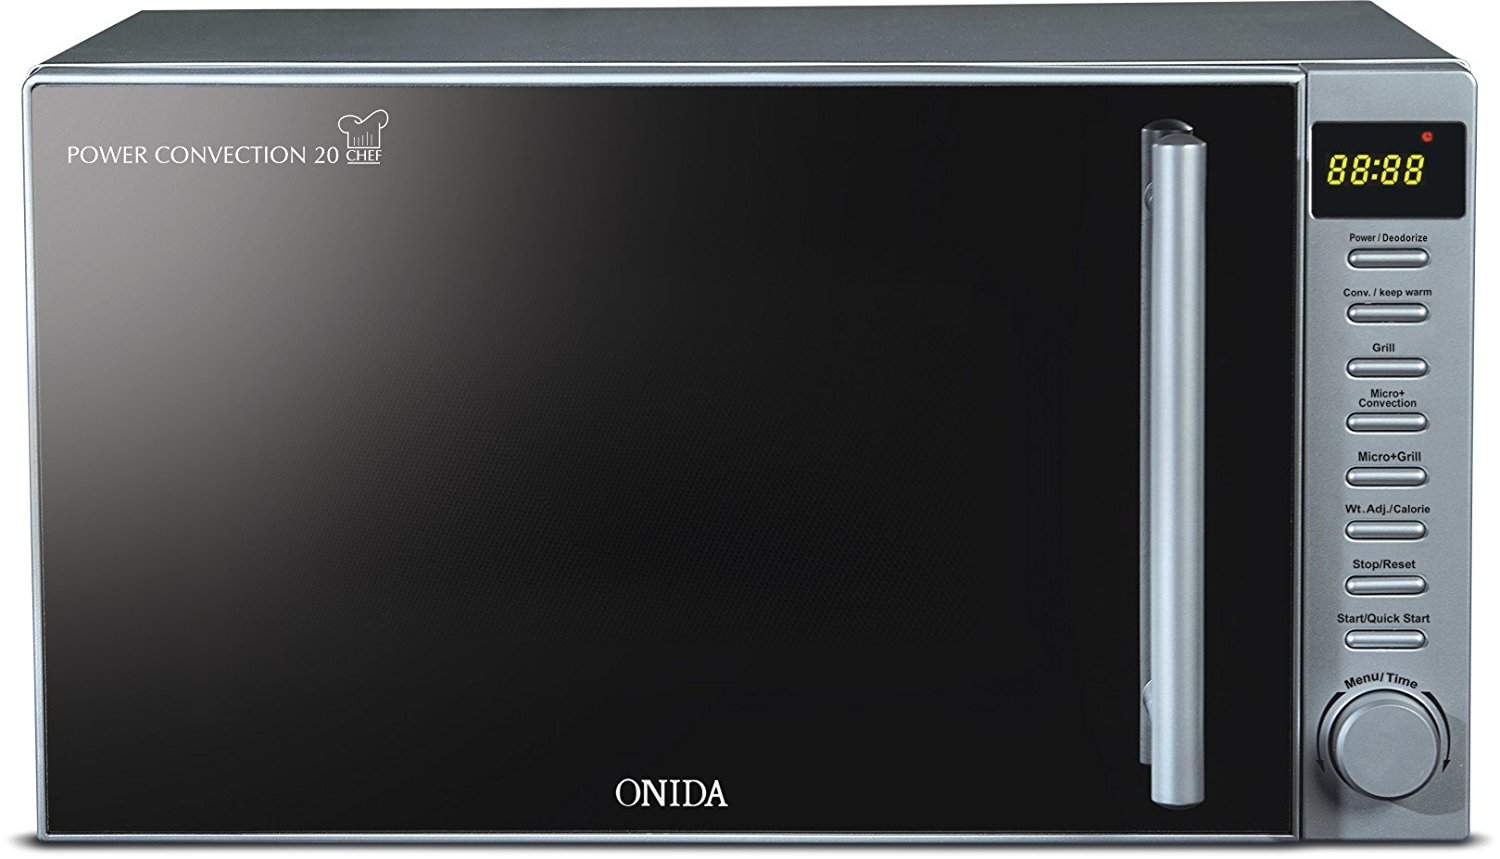 perfect oven for cooking your favourite dishes onida power convection 20 dlx consumer review